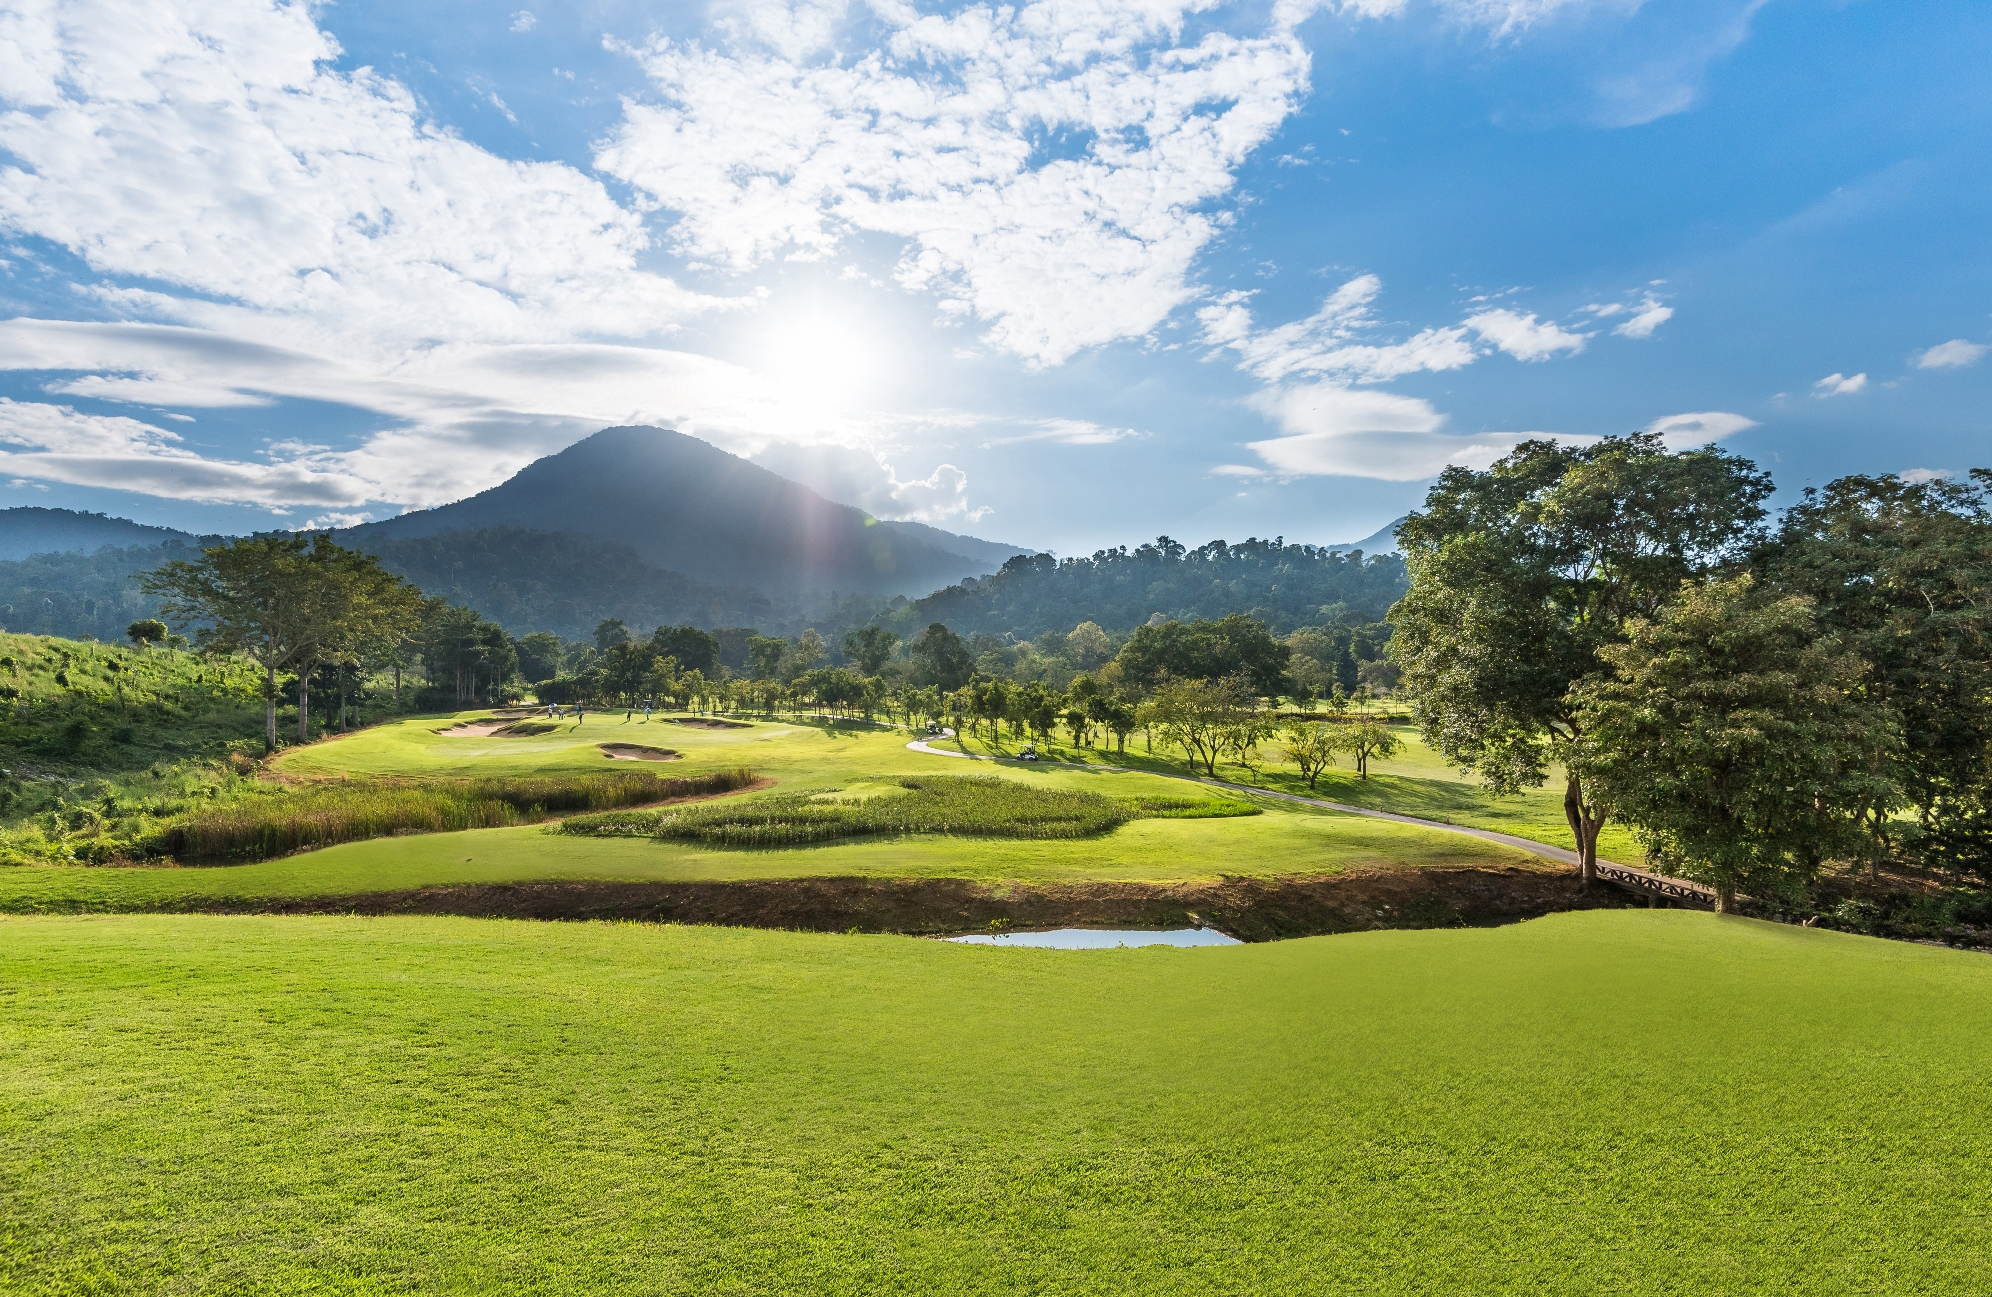 Beautiful golf course at Chatrium Golf Resort